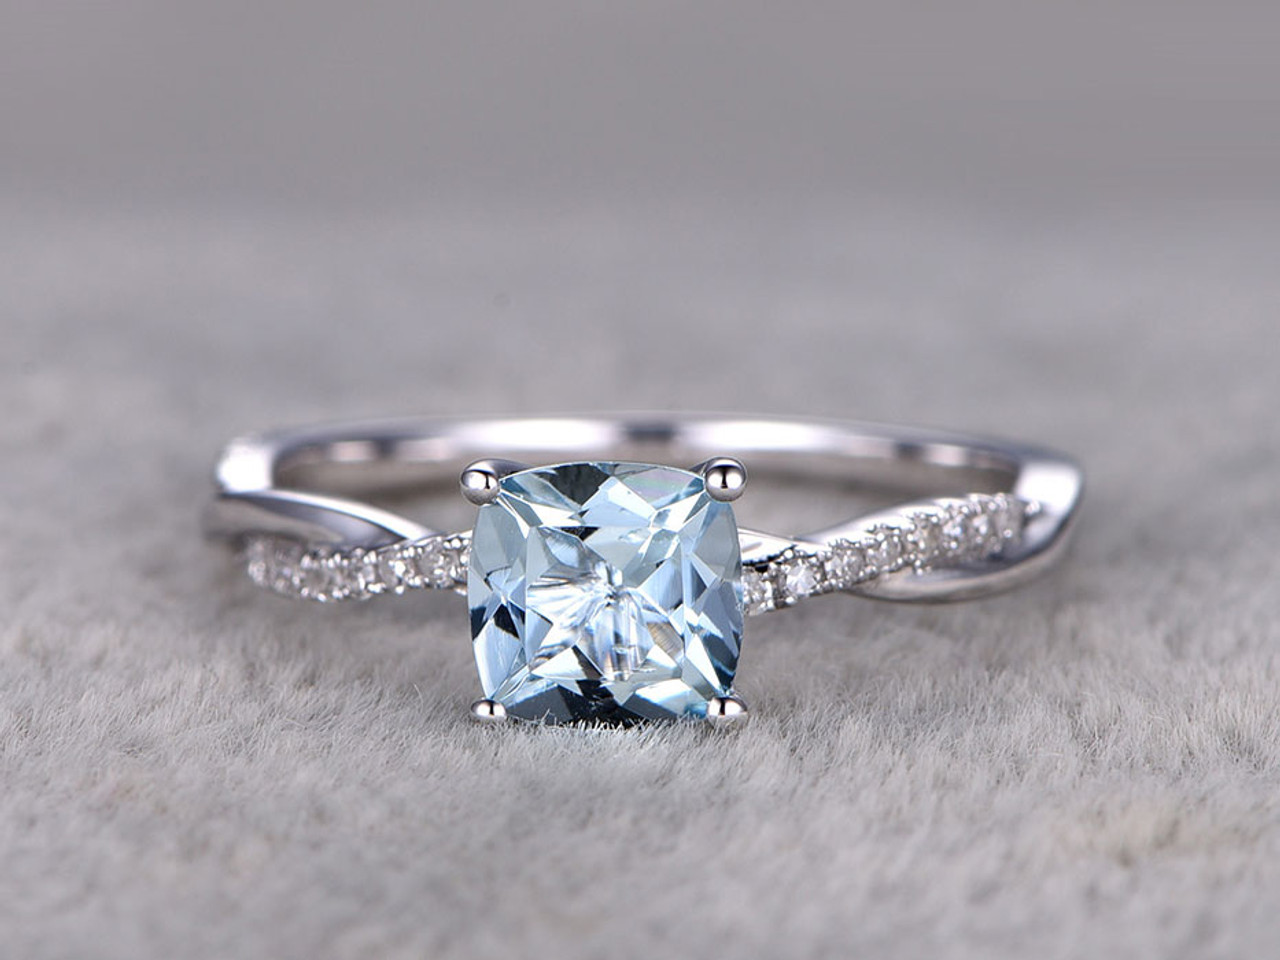 aqua diamond edinburgh engagement of rings ring gold macintyres white aquamarine